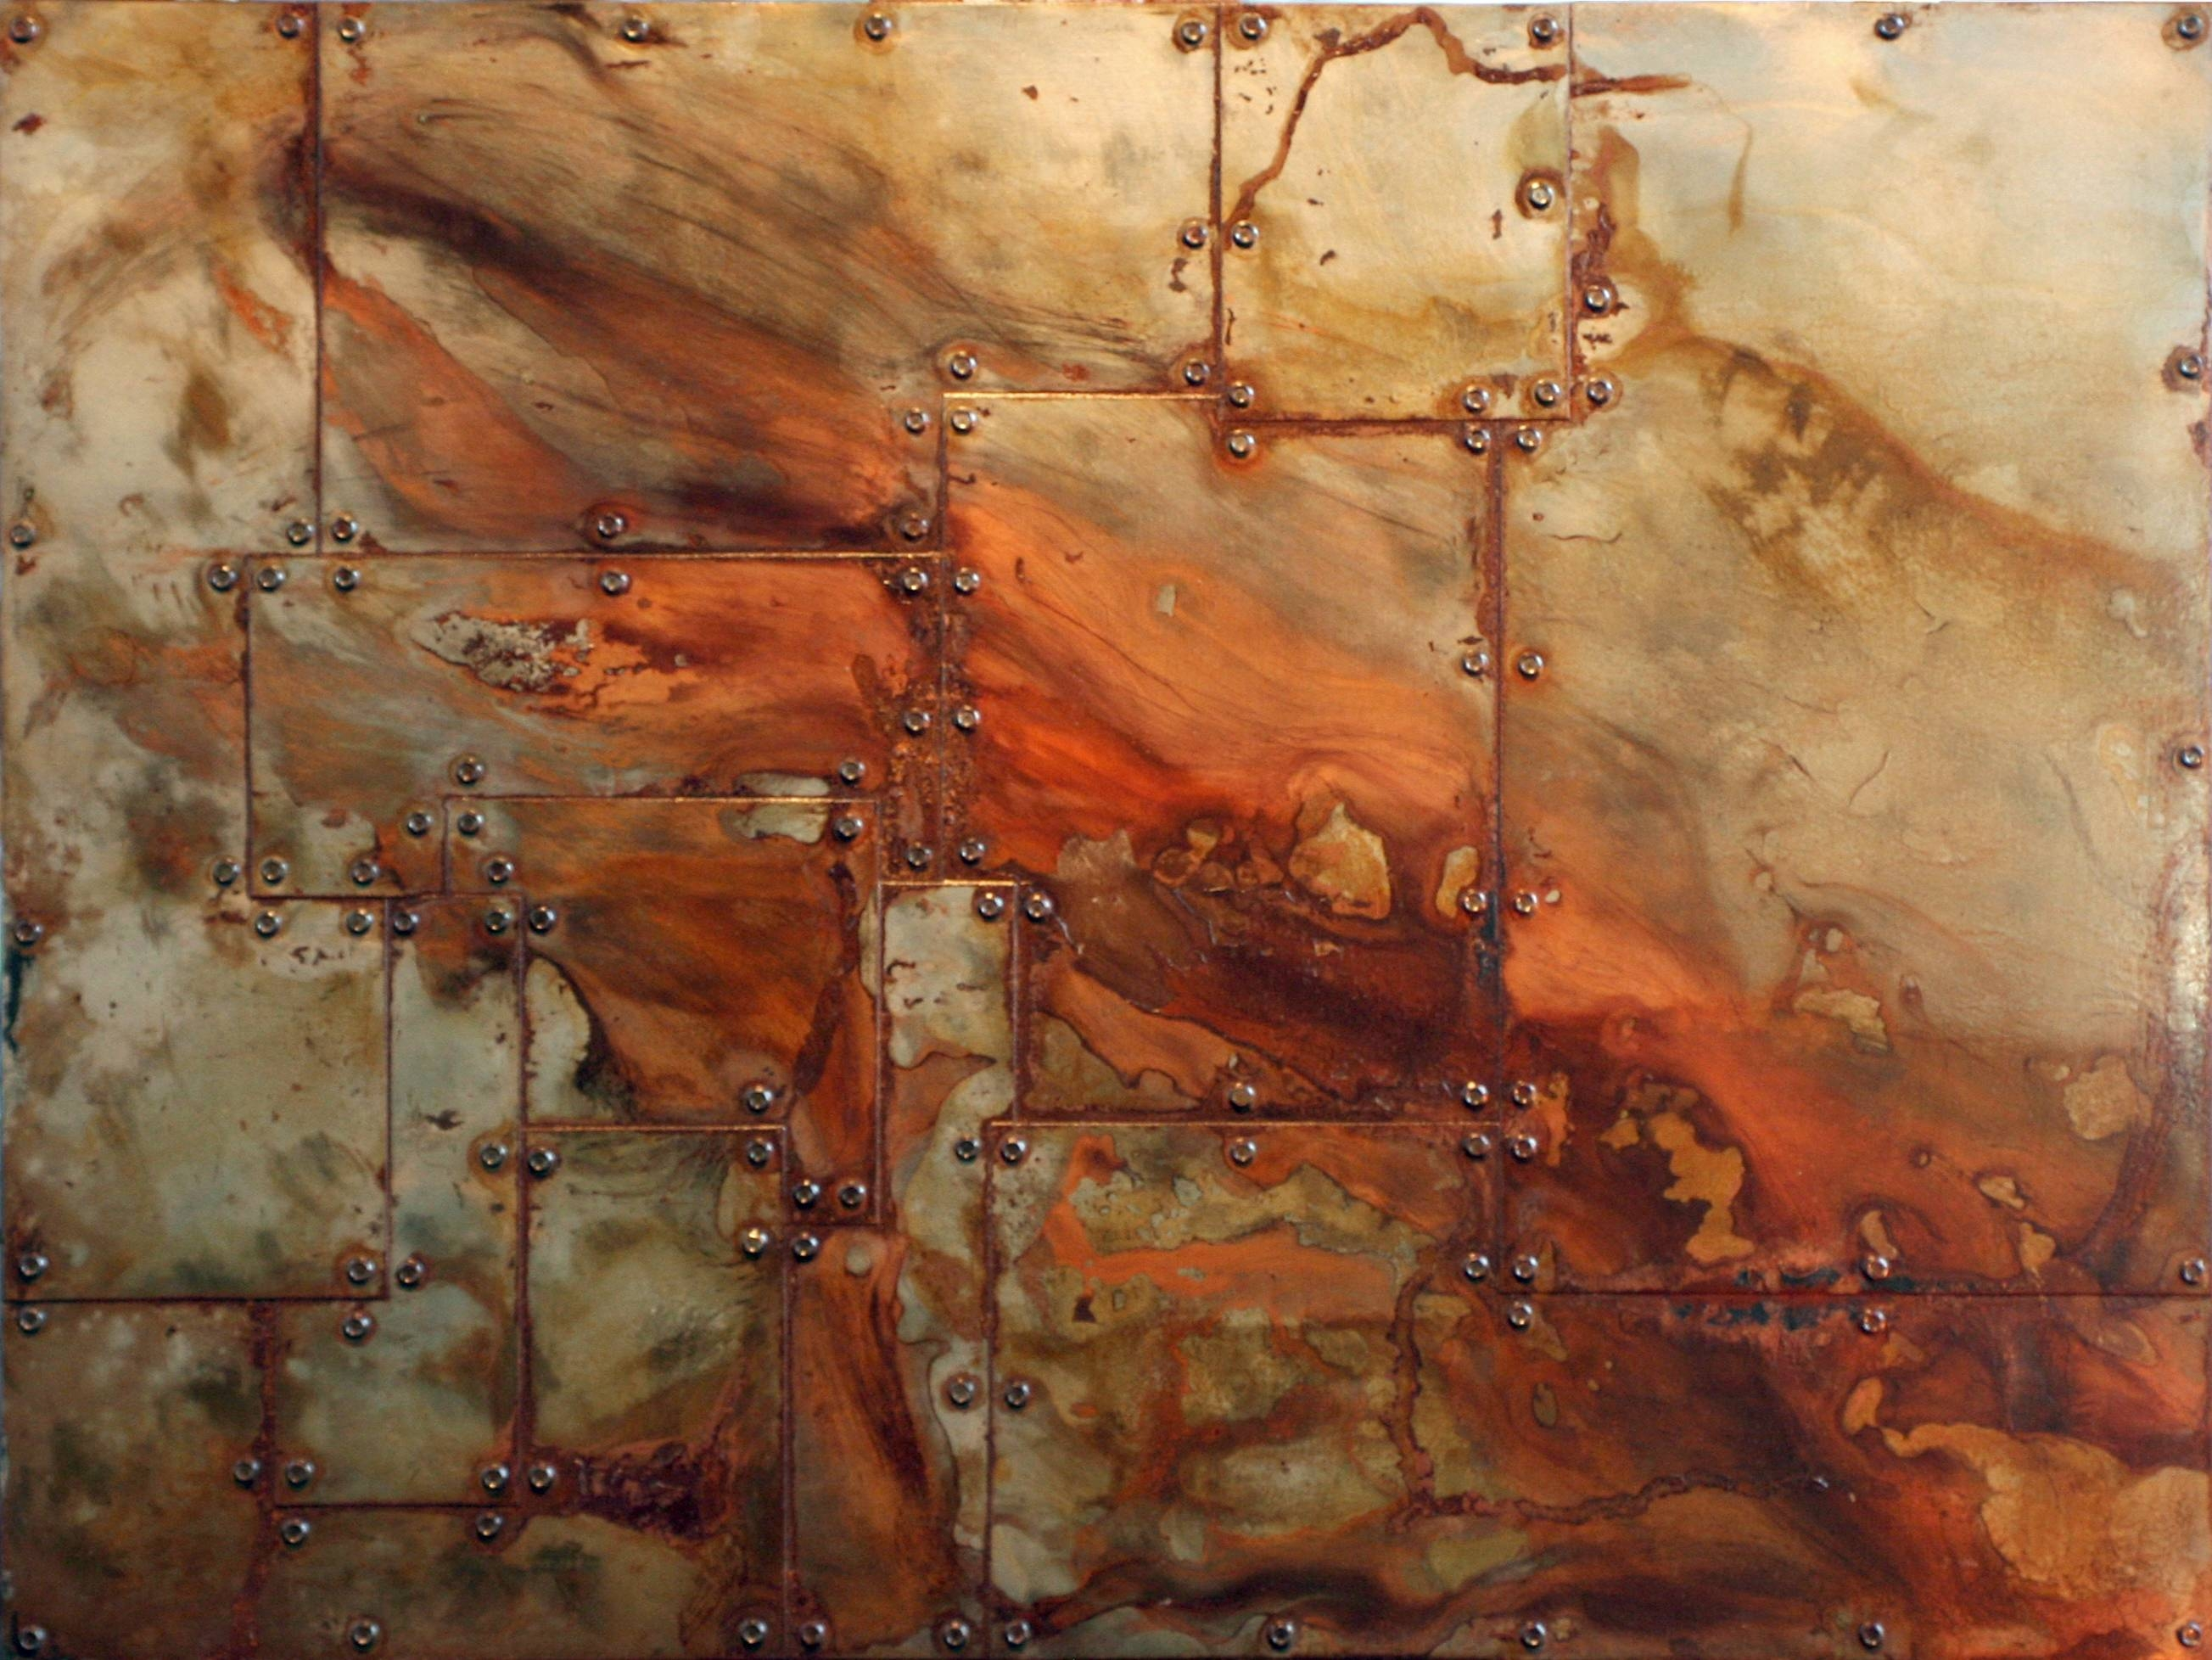 Metal Texture Background, Old Metal Texture Image In Latest Rusted Metal Wall Art (View 8 of 20)